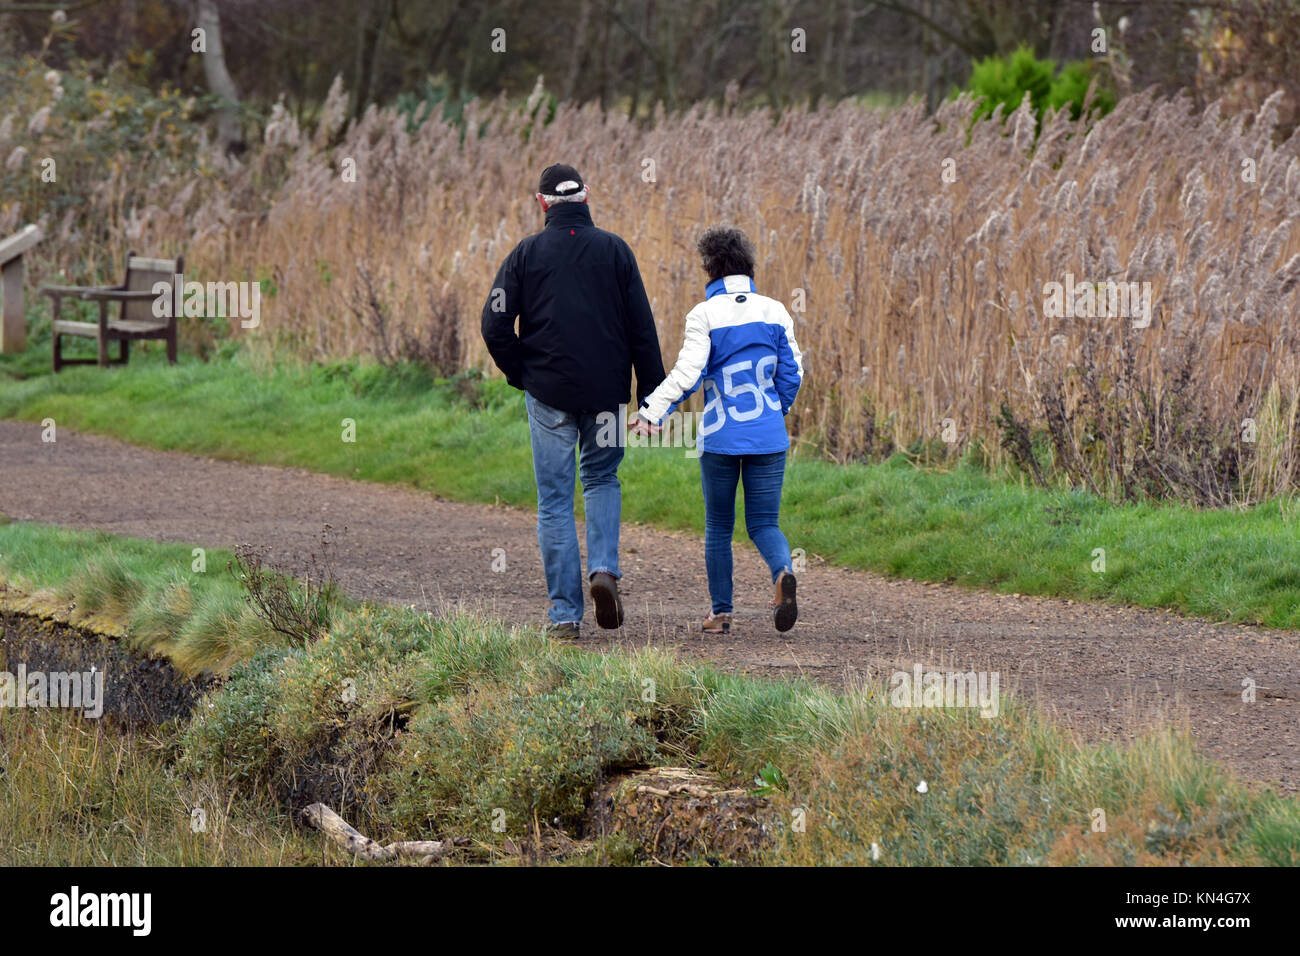 a trendy or classically dressed middle aged couple walking along a footpath next to some reeds and a river on a - Stock Image